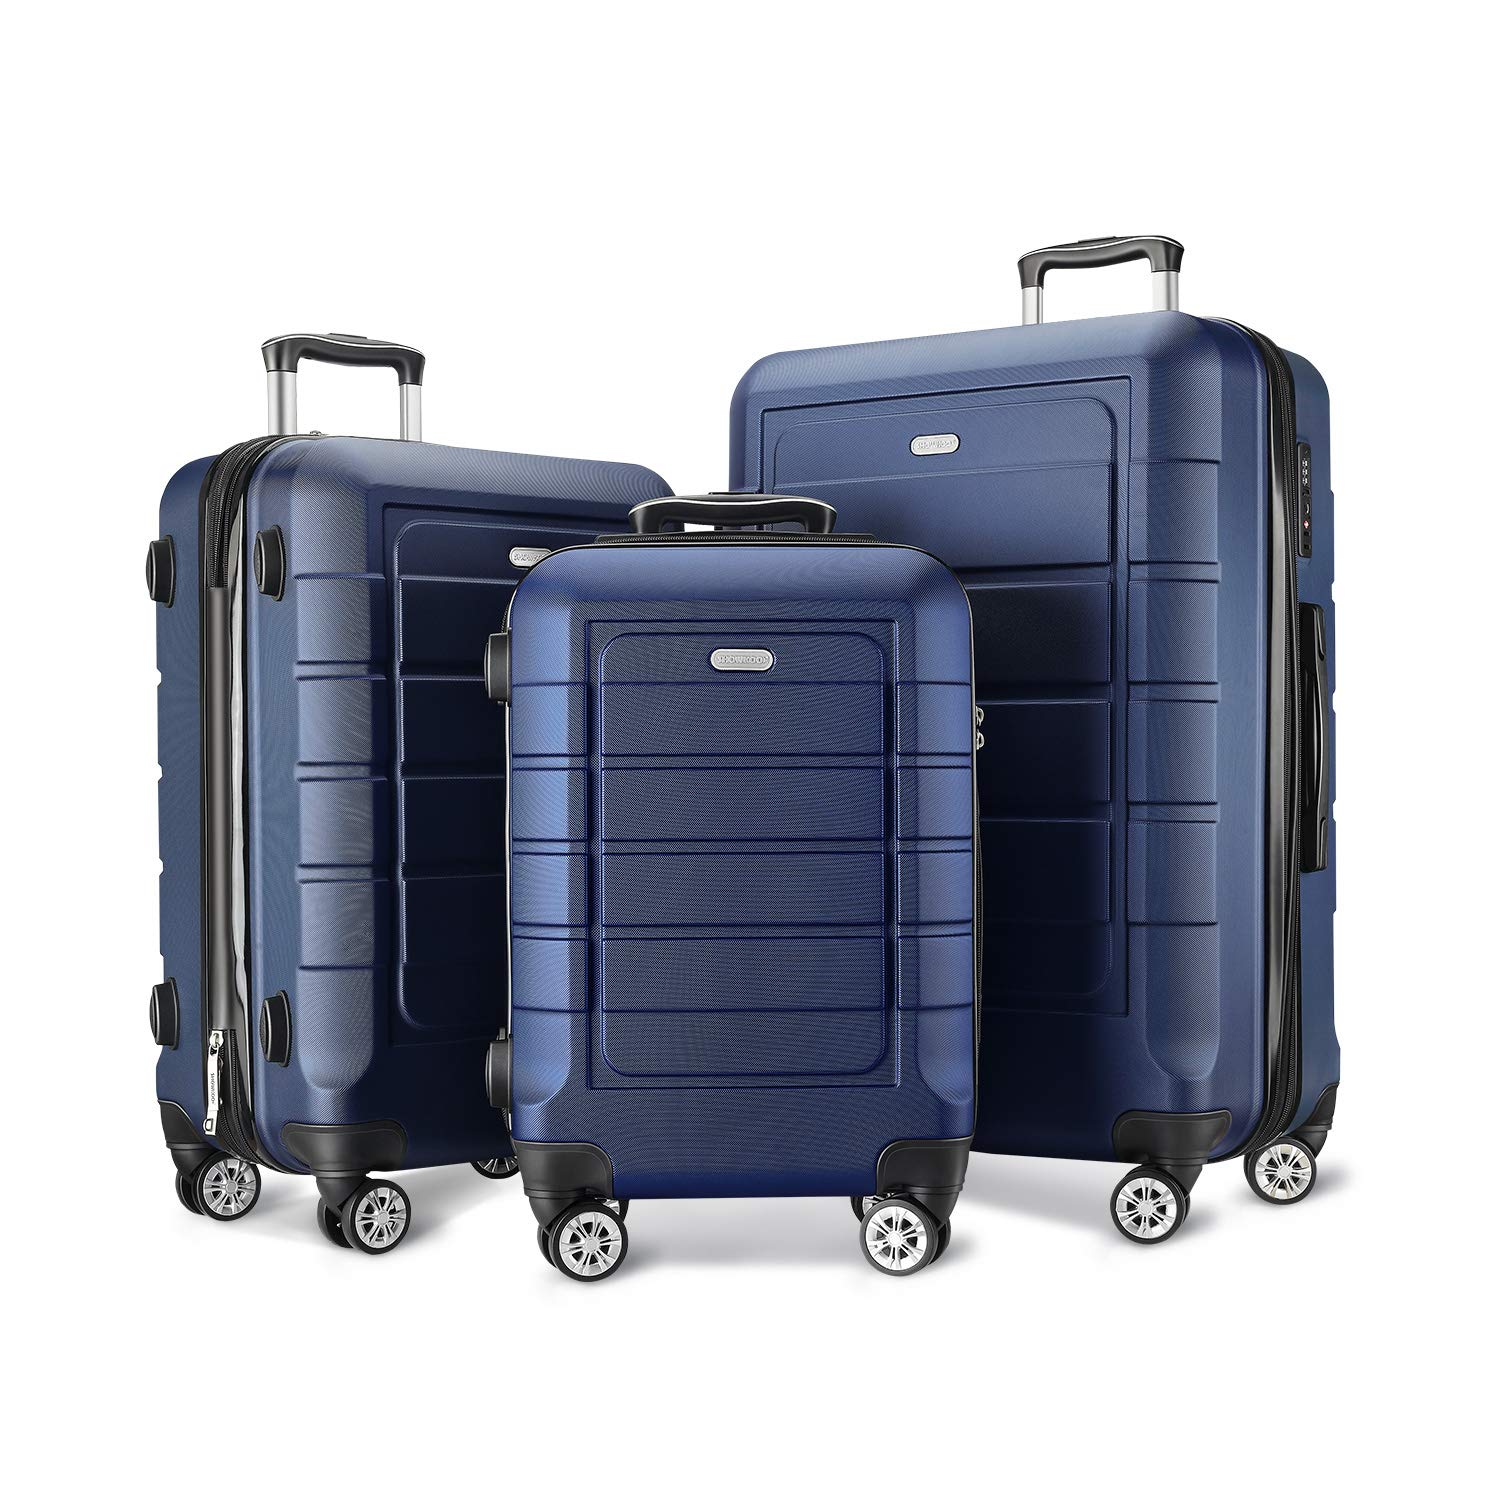 SHOWKOO Luggage Sets Expandable PC+ABS Durable Suitcase Double Wheels TSA Lock Blue by Showkoo